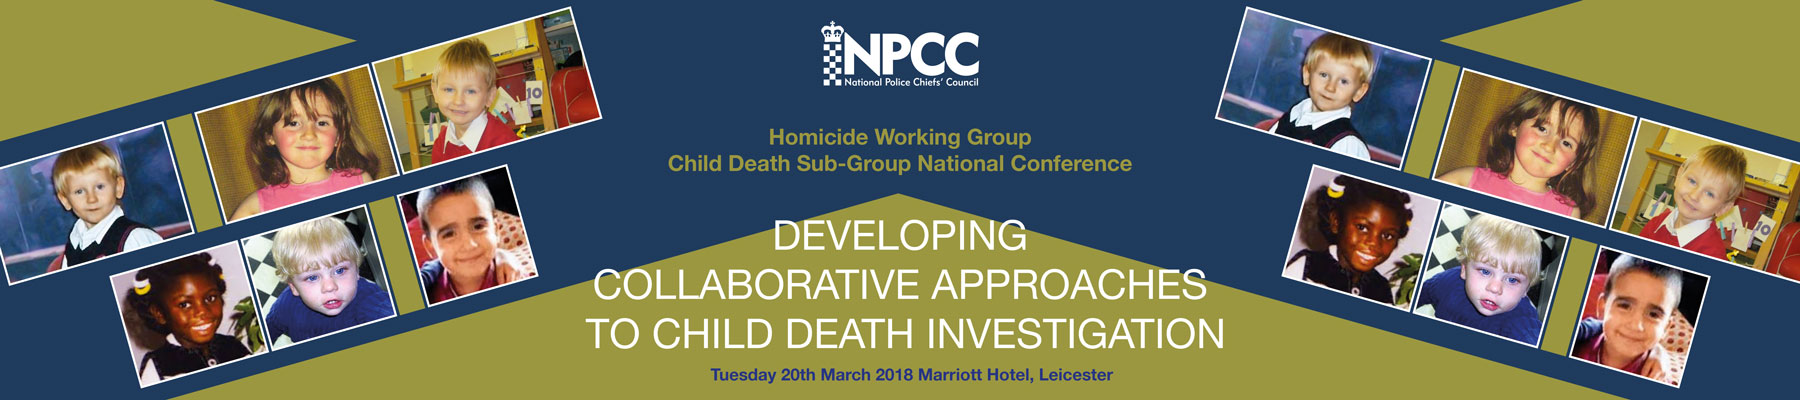 2018 Homicide Working Group Child Death Sub-Group National Conference